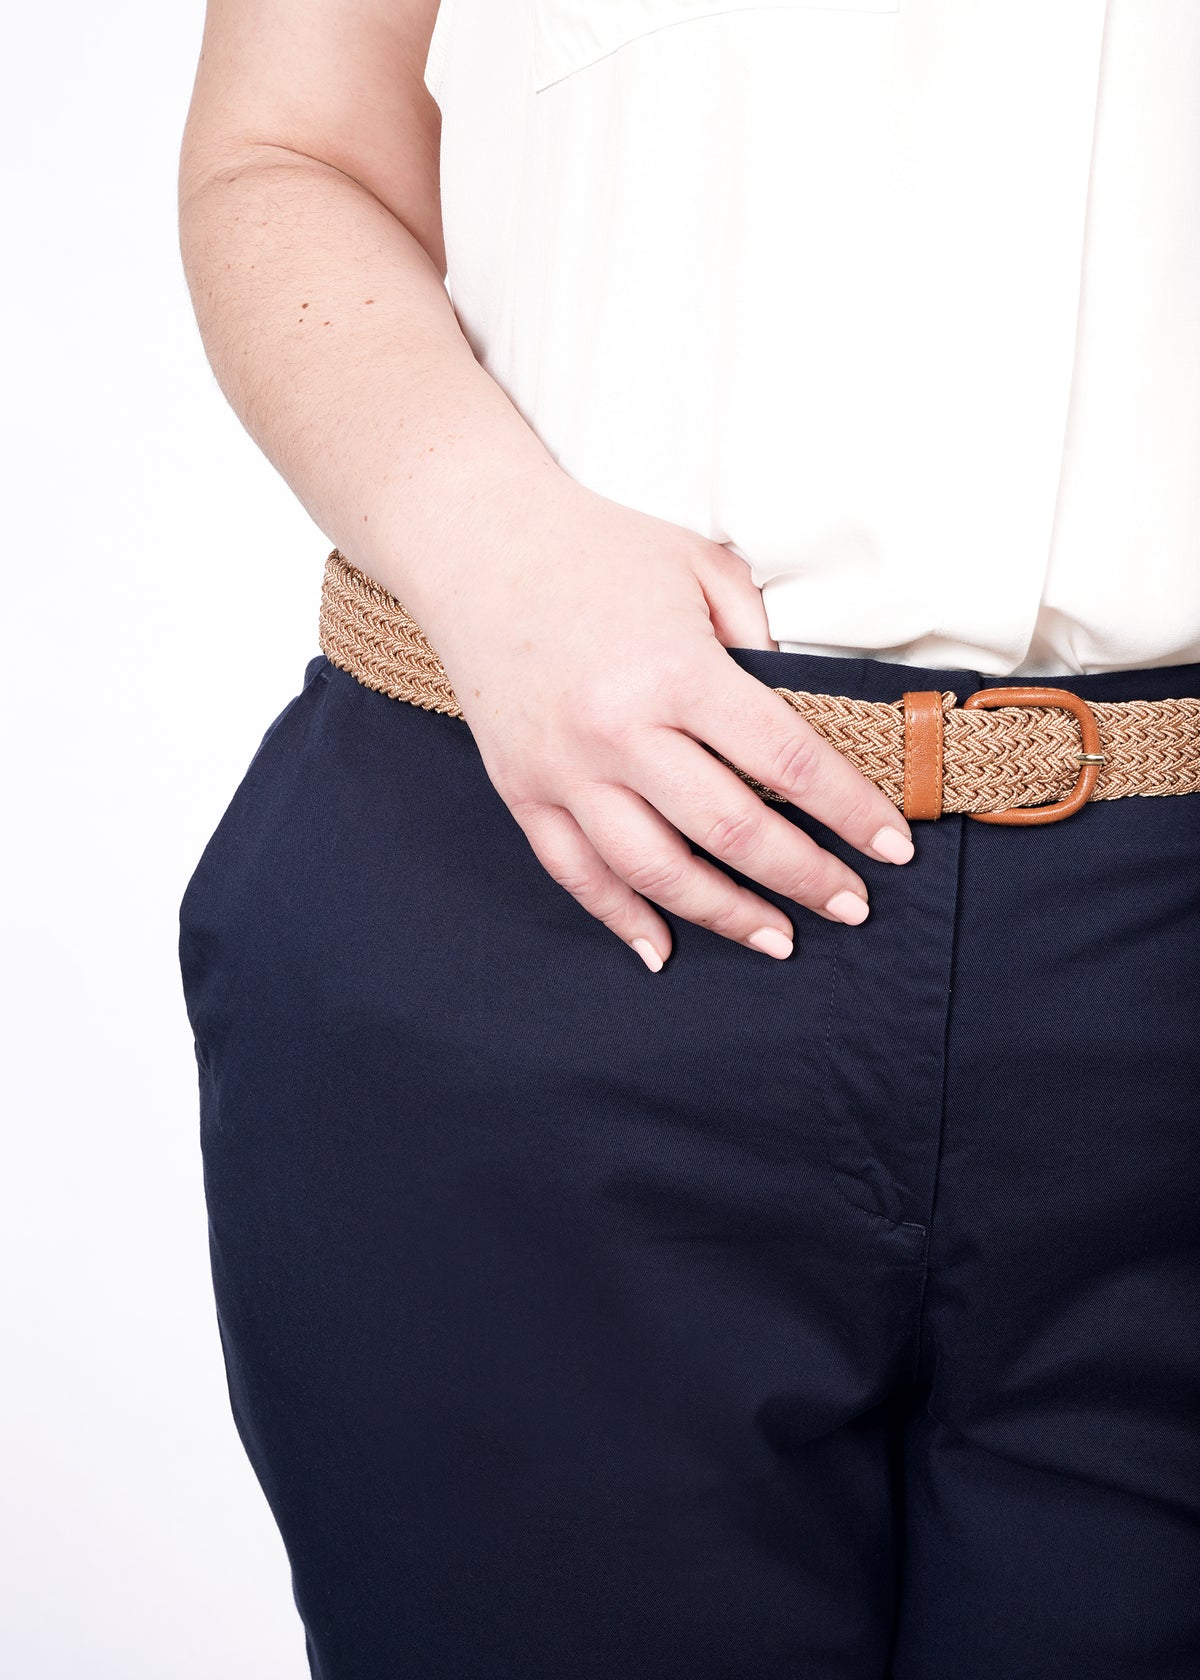 Waist with tan belt on navy trouser pants, with white sleeveless top tucked in